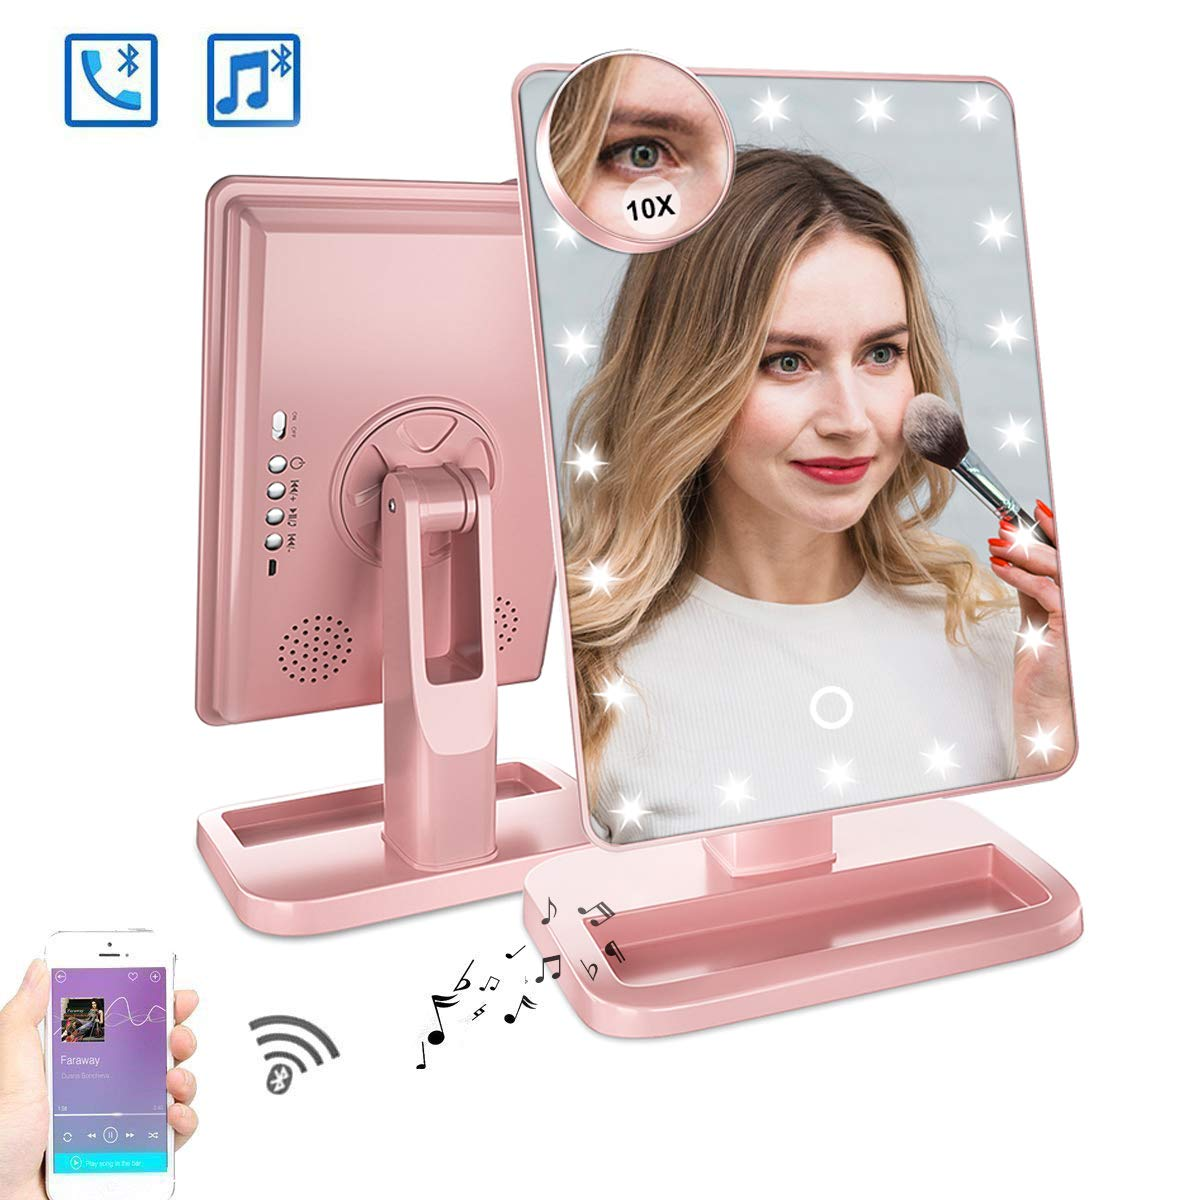 Fenair Makeup Vanity Mirror With Bluetooth-Rechargeable Lighted 20 LED Mirror,Touch Screen Cosmetic Vanity Mirror,Detachable 10X Magnification 180°Rotation, Light Up Desktop Makeup Mirror (Rose)